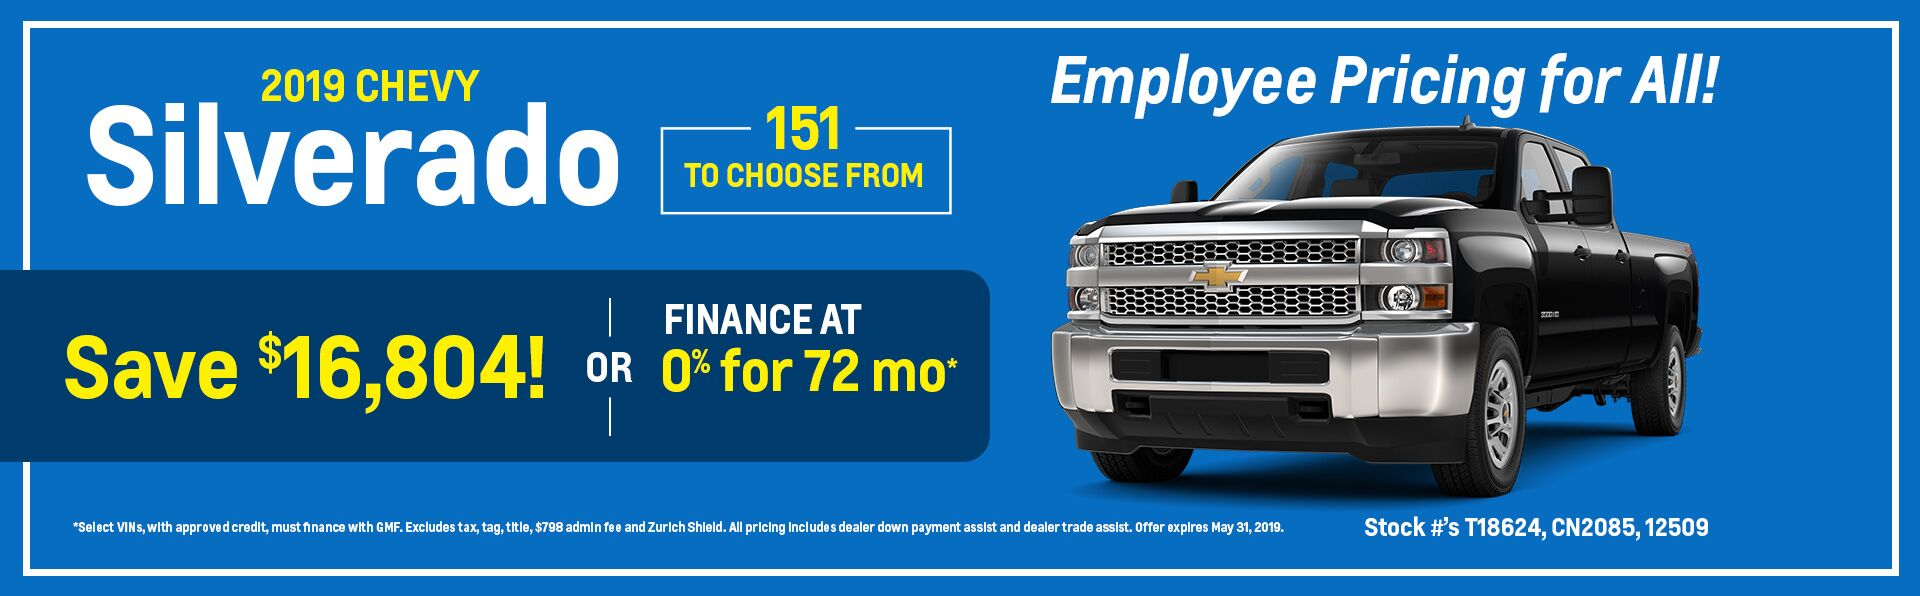 Chevy Dealership Charlotte Nc >> Chevrolet, Buick and GMC Dealer in Salisbury - Serving Lexington, Concord and Charlotte